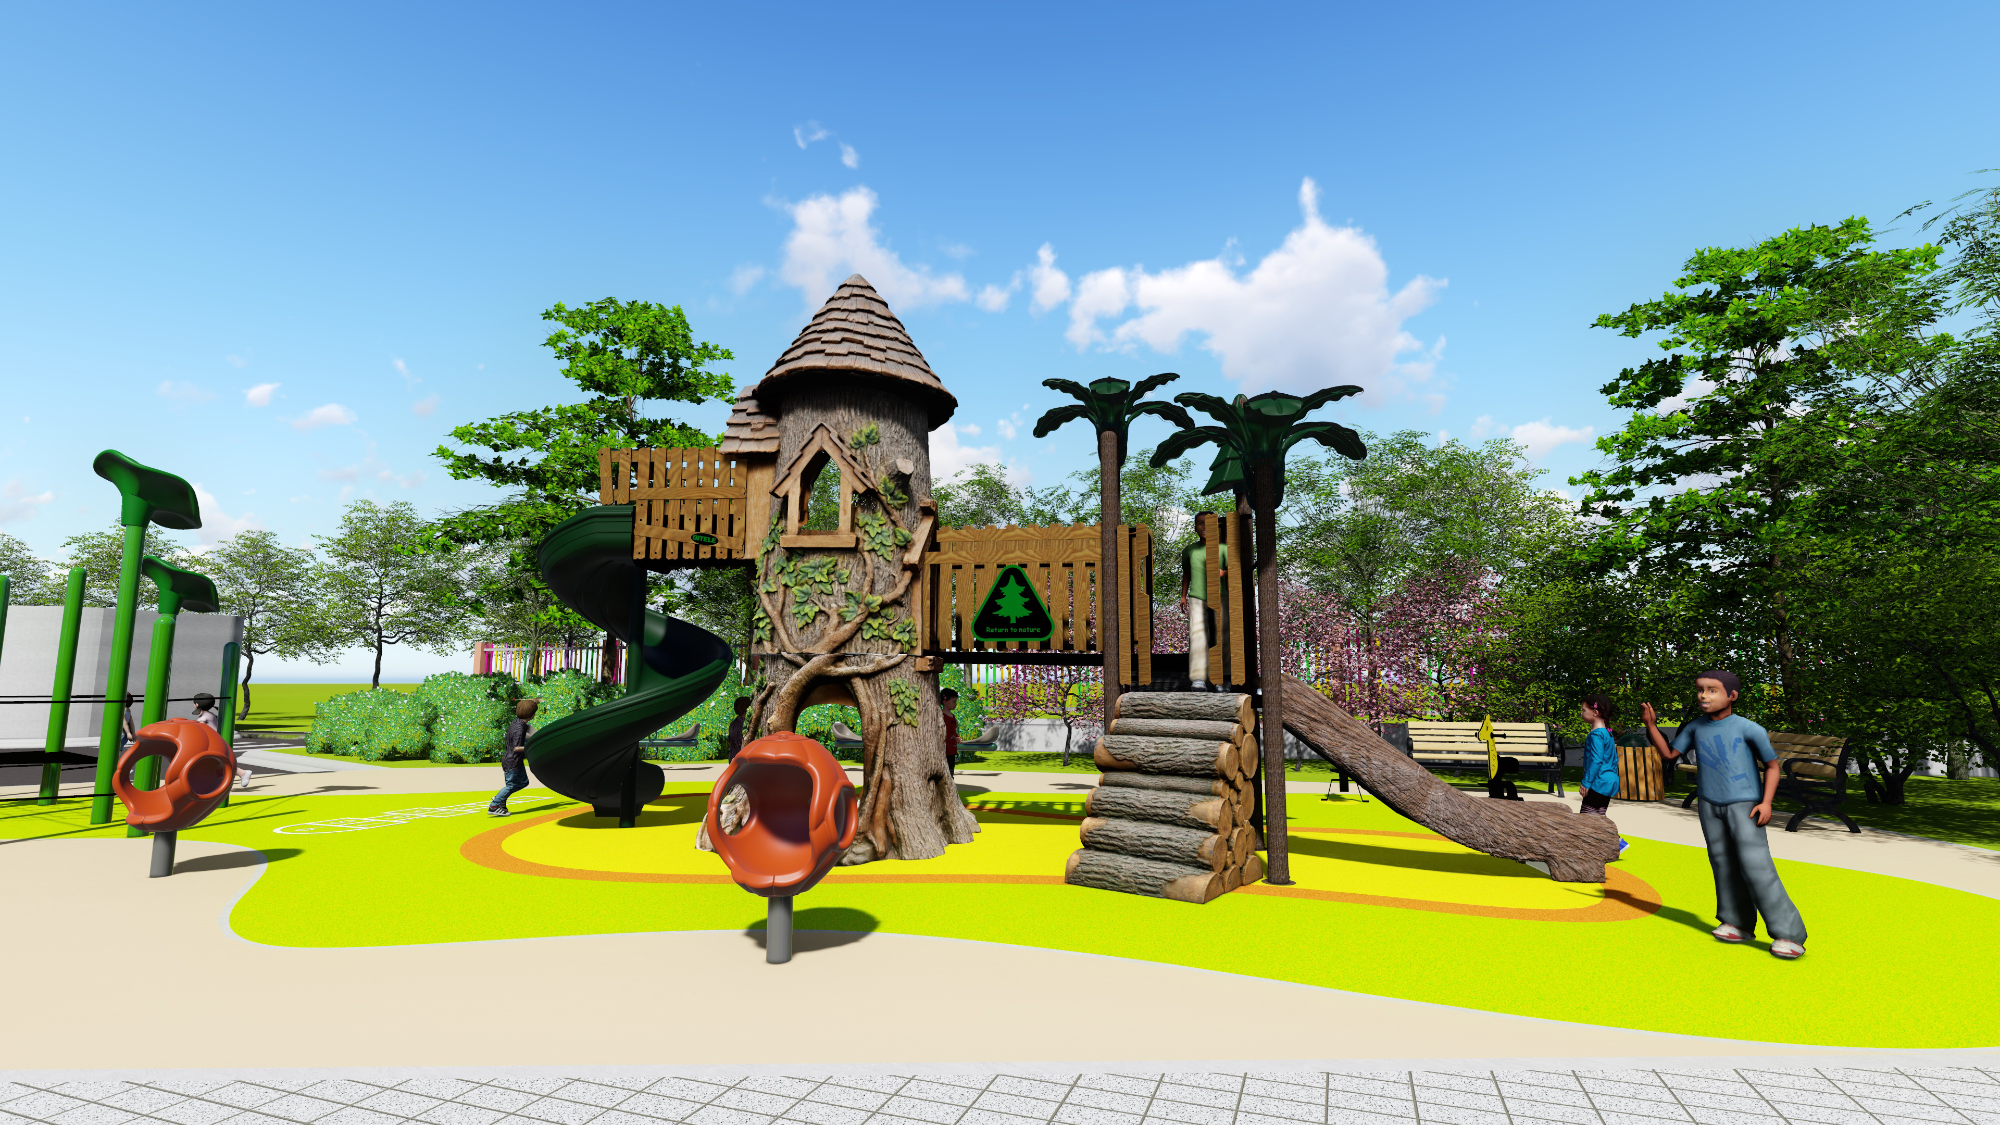 New outdoor playground design for park